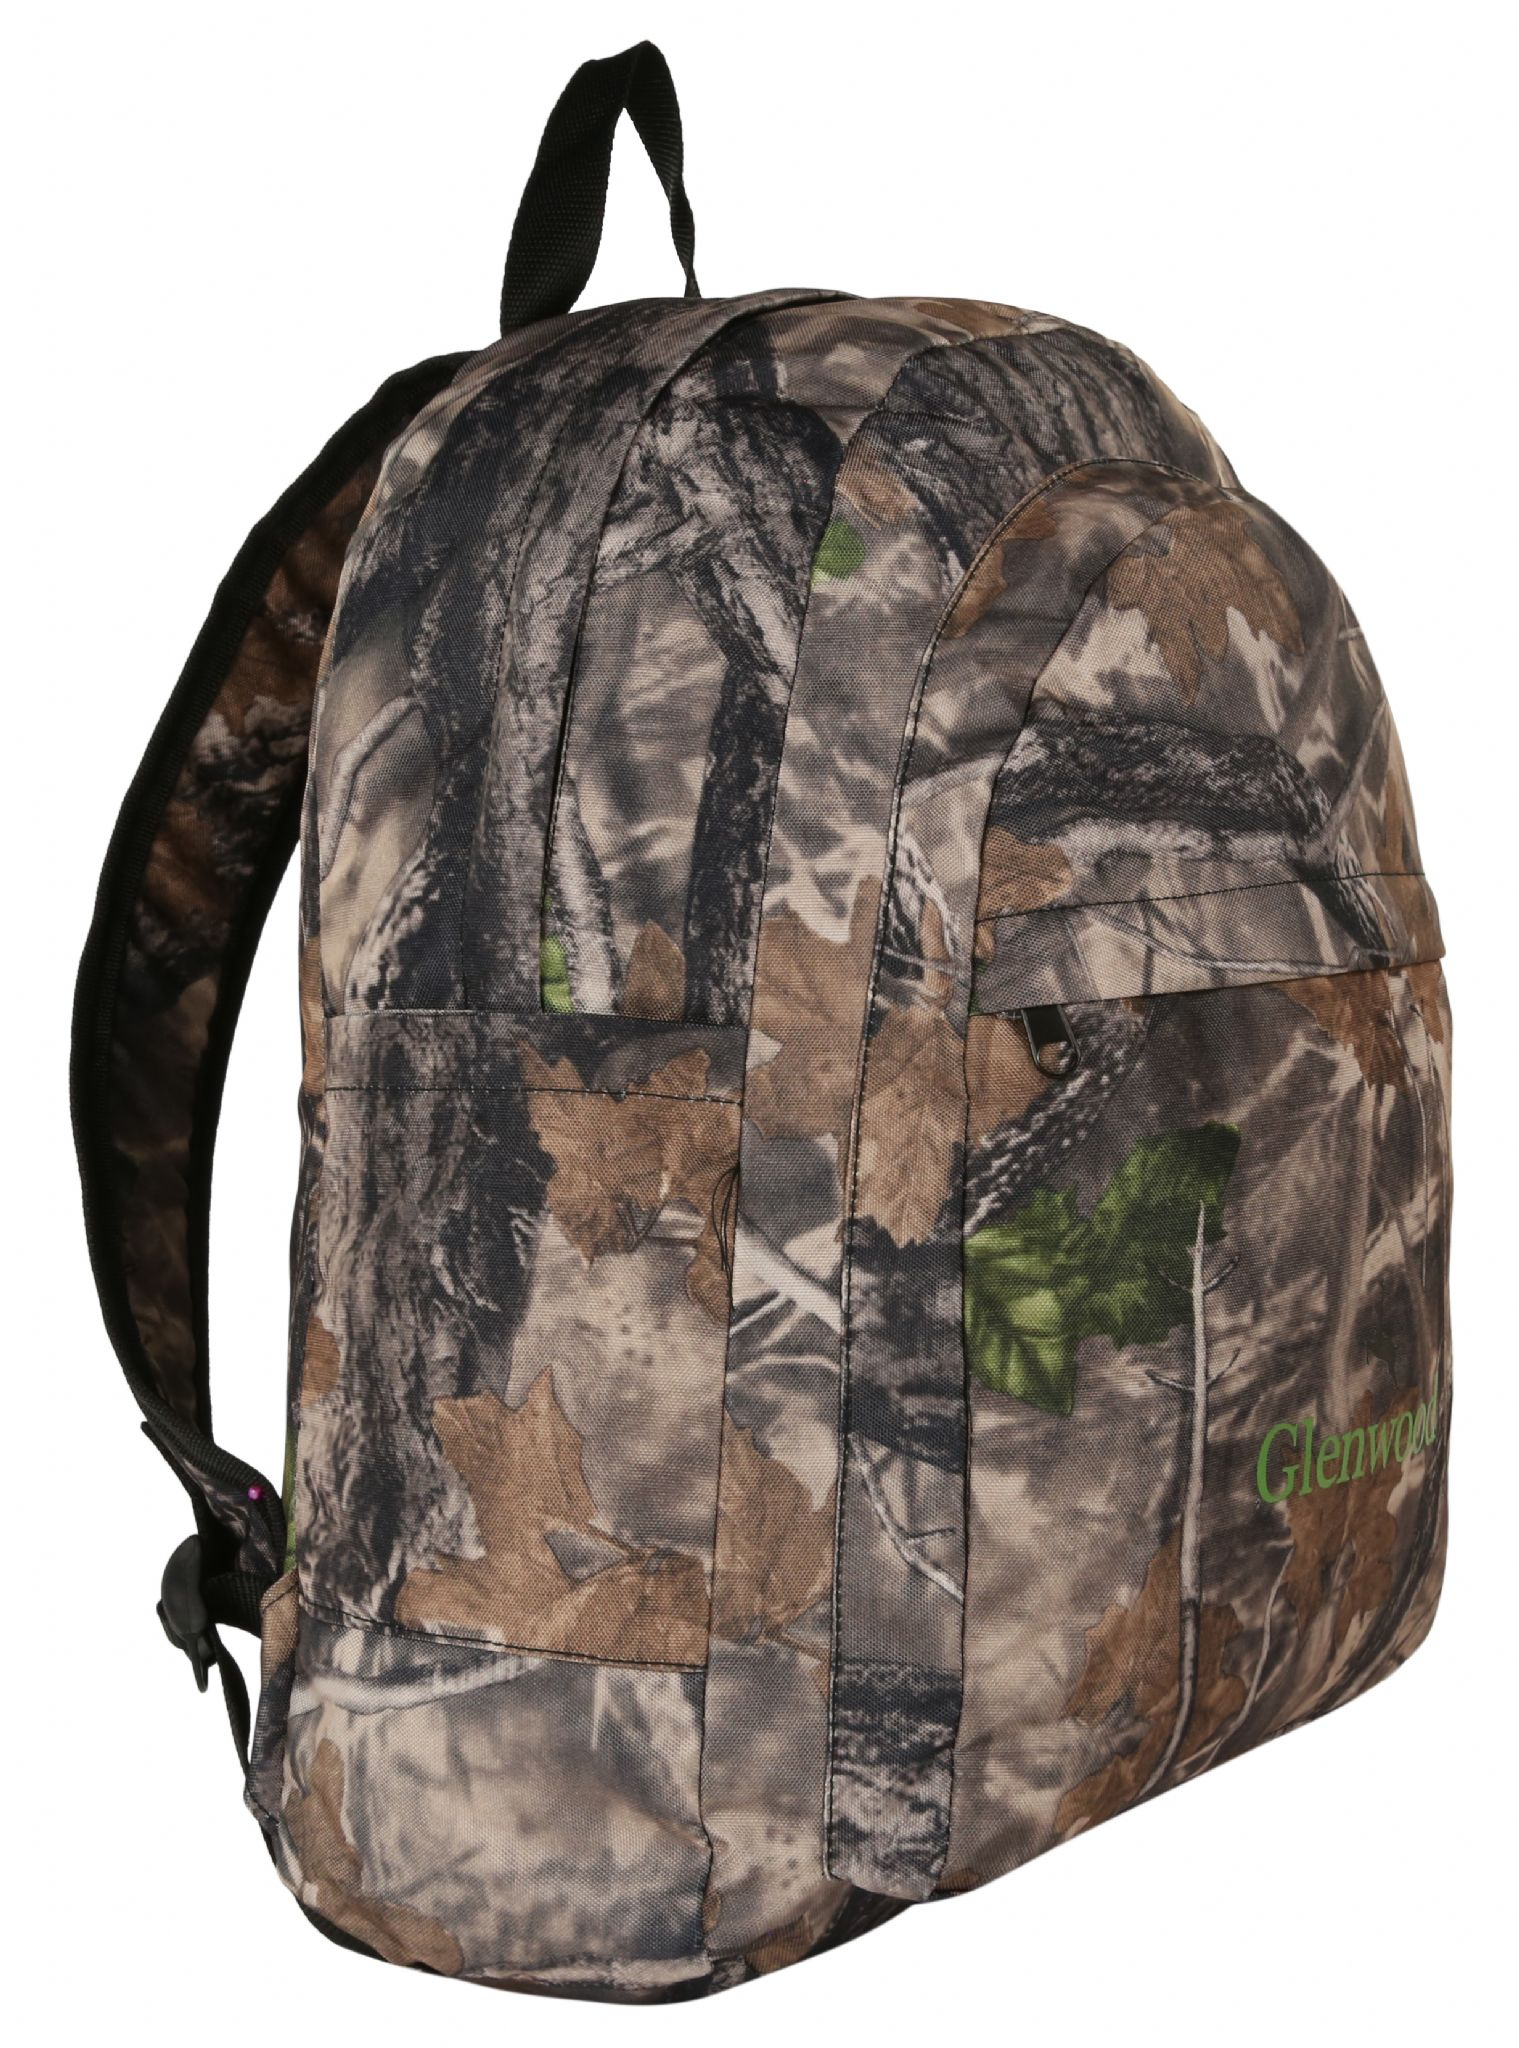 Camo Rucksack Backpack Bag Strong Durable For Pigeon